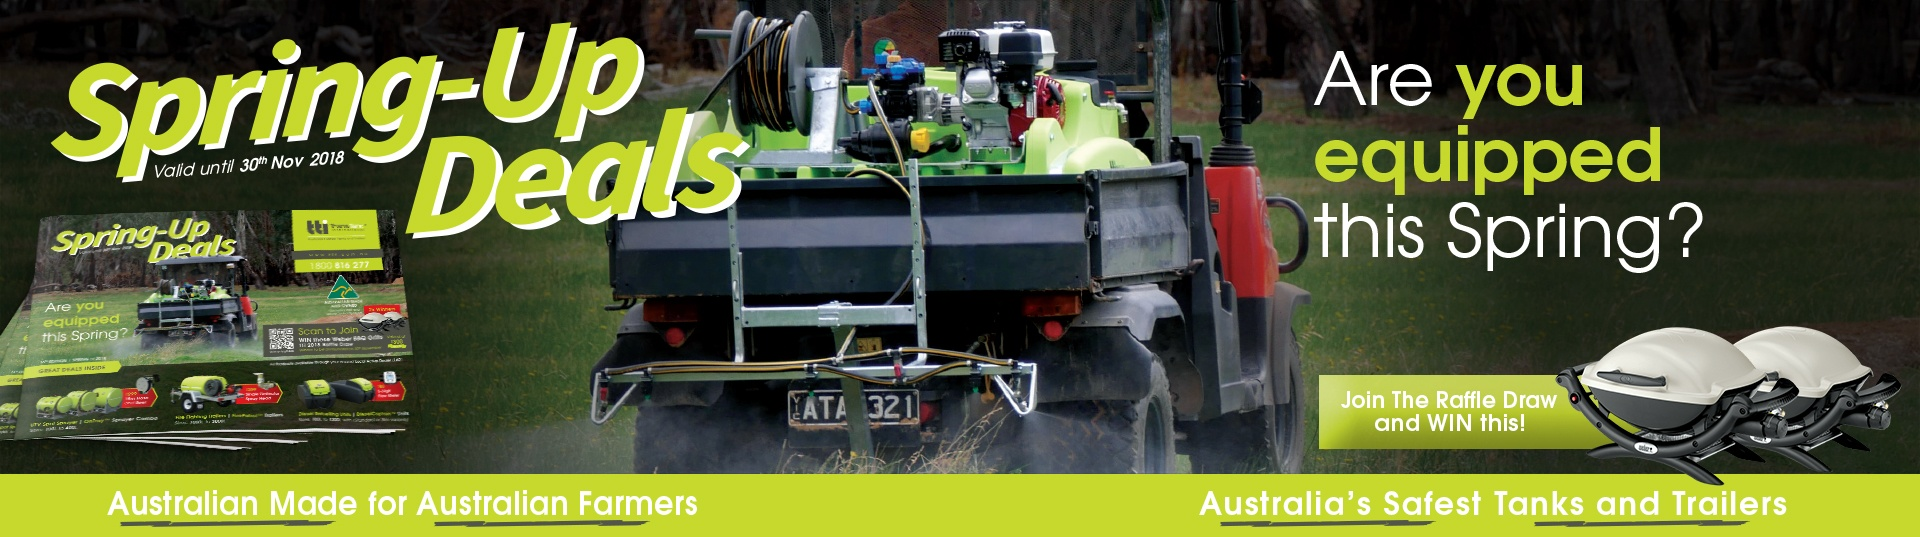 spring up deals, spring 2018, australia, low prices, best deals, lads, local active dealer, tti sales catalogue, spray equipment, diesel transport equipment, tank, tanks, trailers,